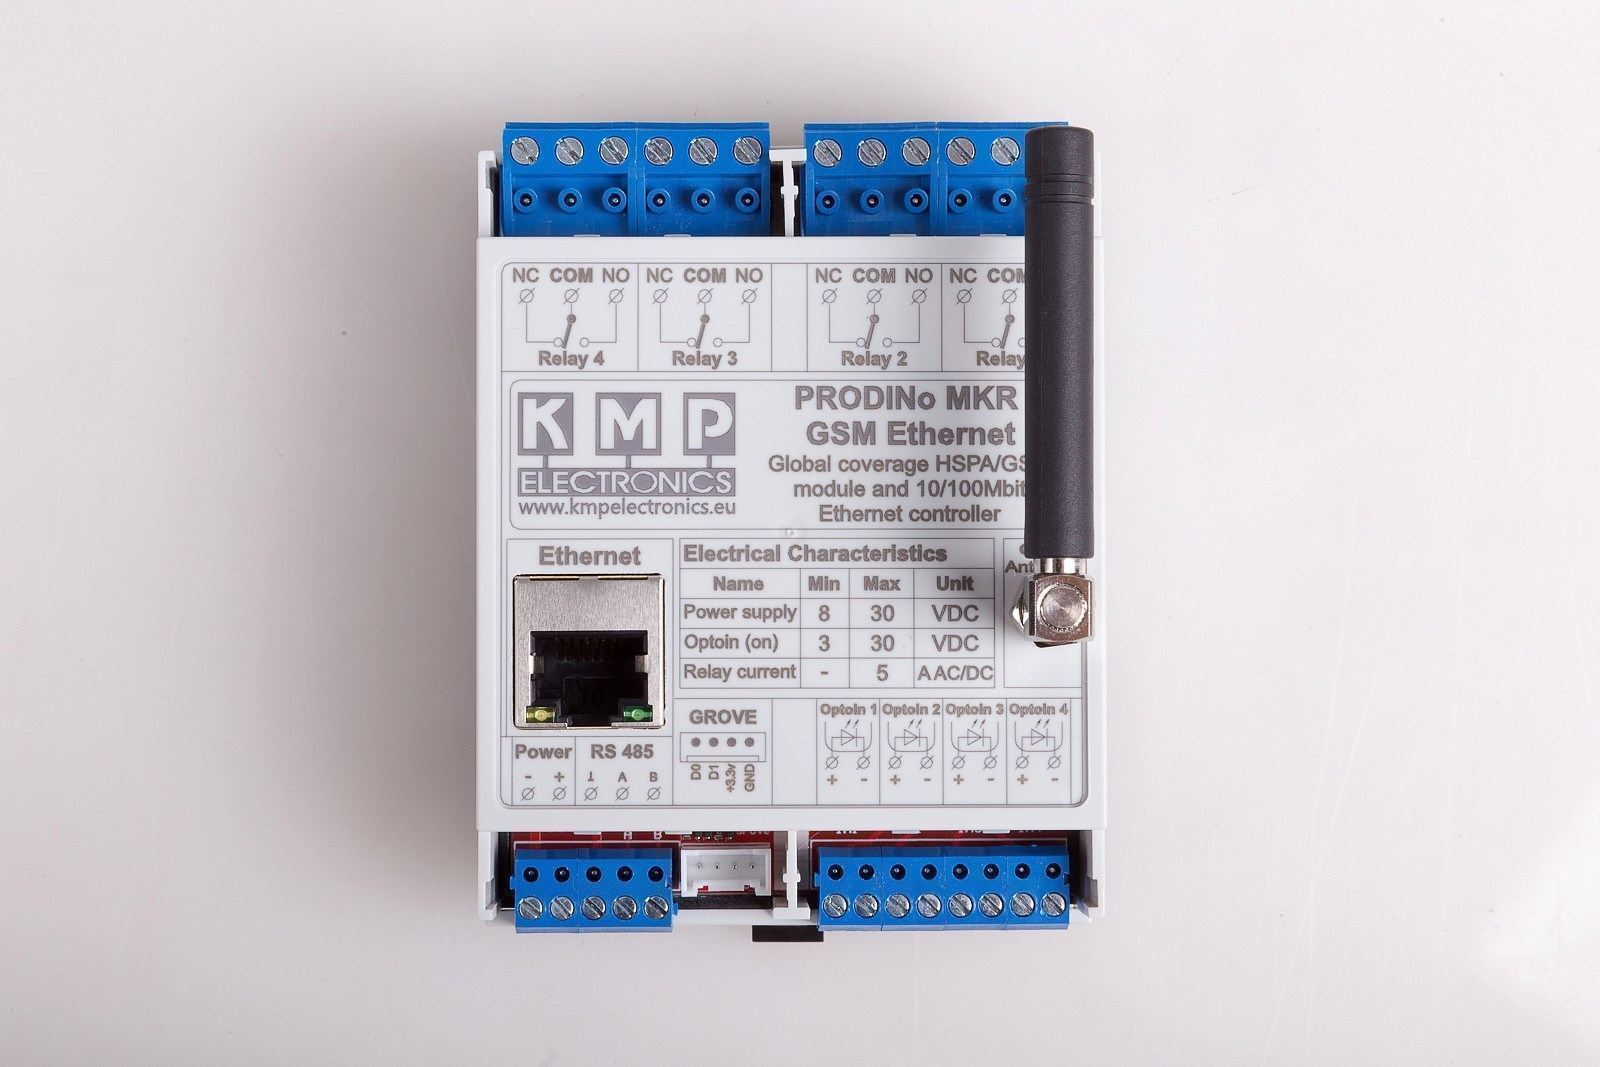 Prodino Mkr Gsm Ethernet V1 Kmp Electronics Ltd No And Nc Contacts Of Relay Top